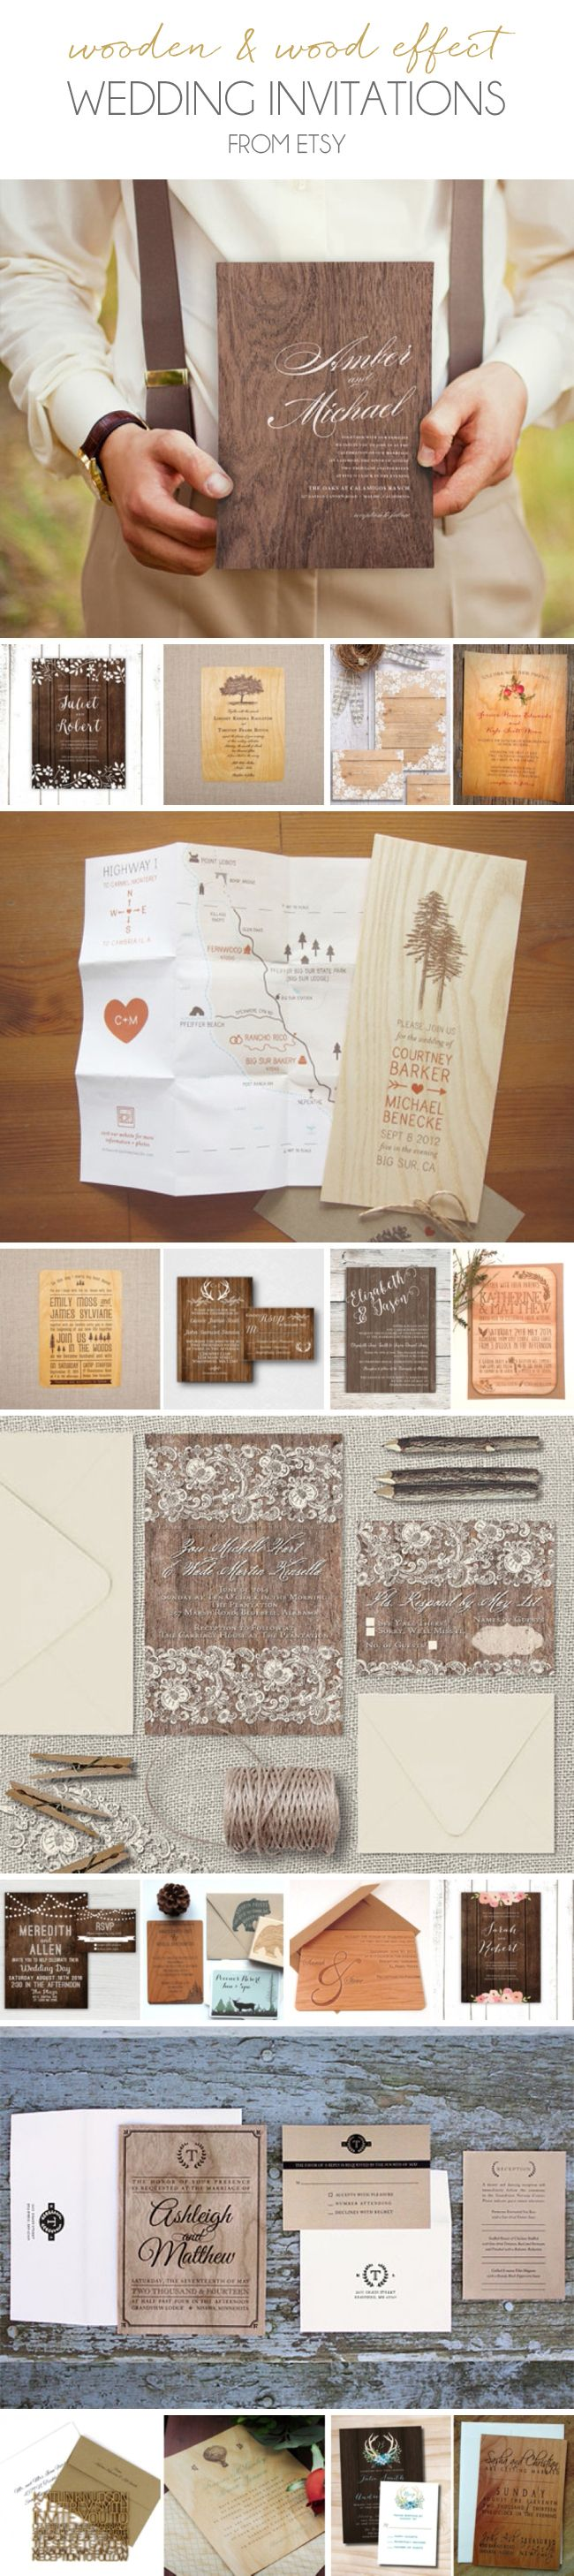 20 Wooden & Wood Effect Wedding Invitations from Etsy